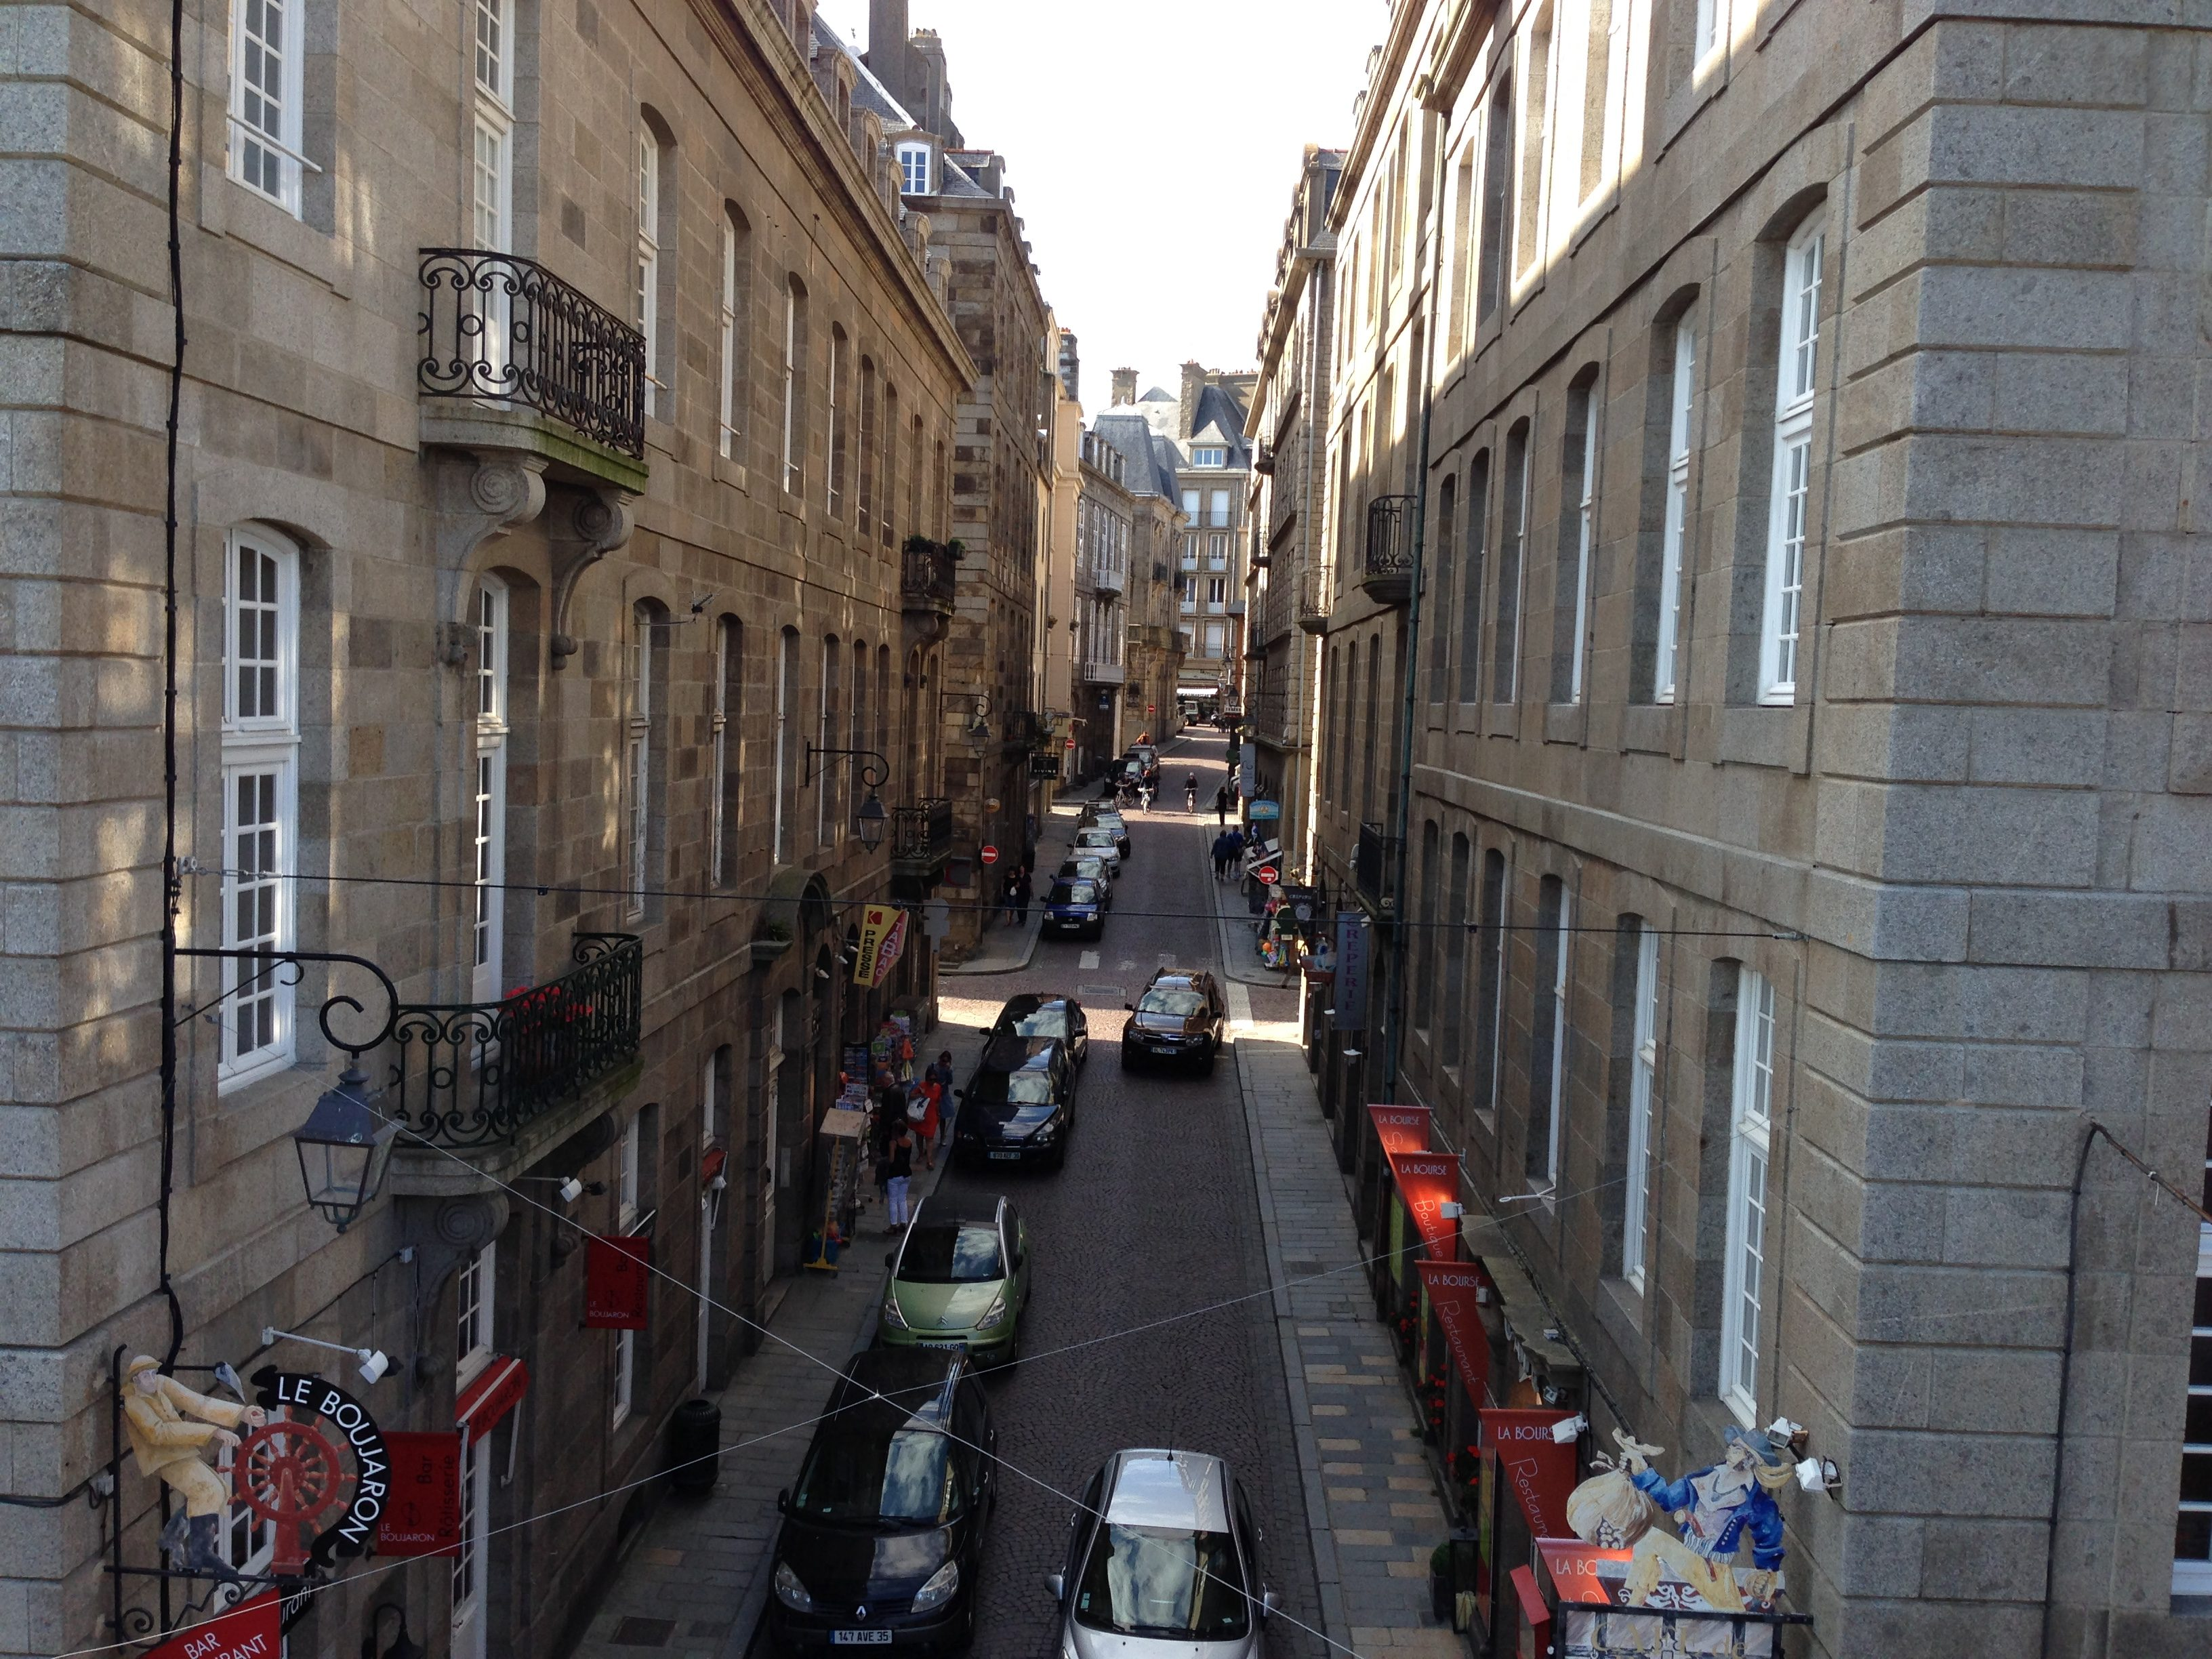 St Malo streets